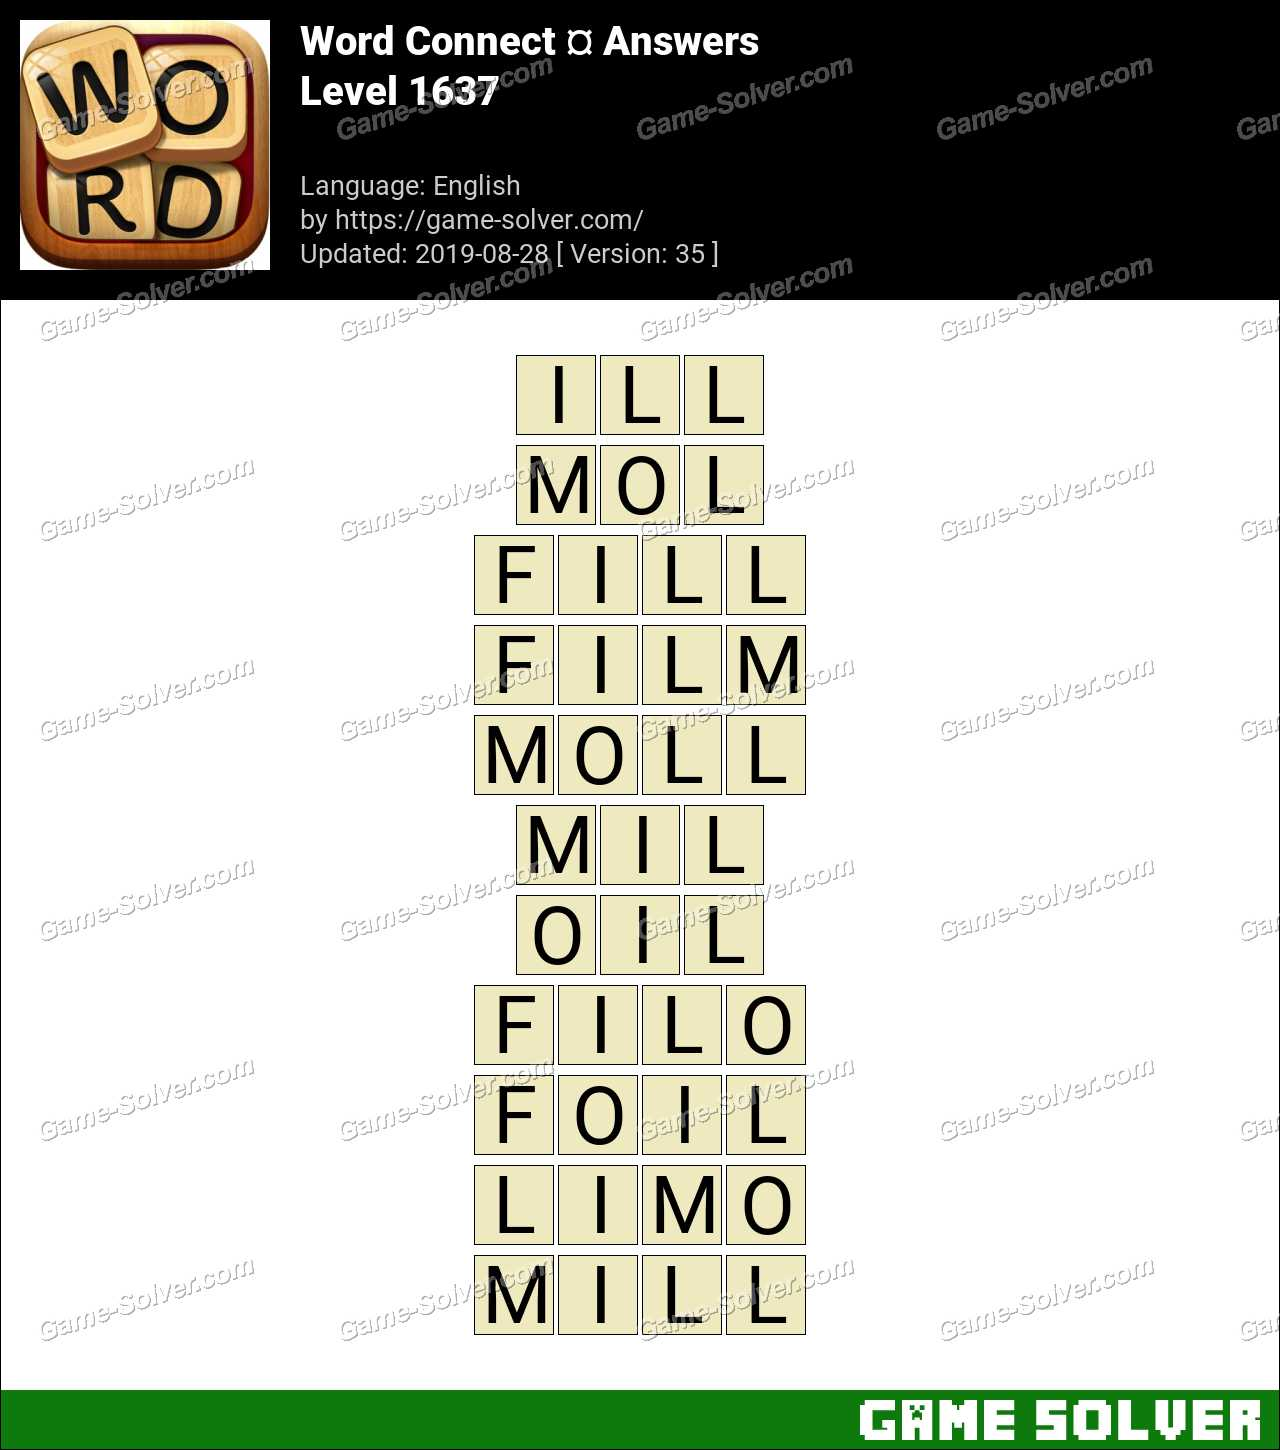 Word Connect Level 1637 Answers